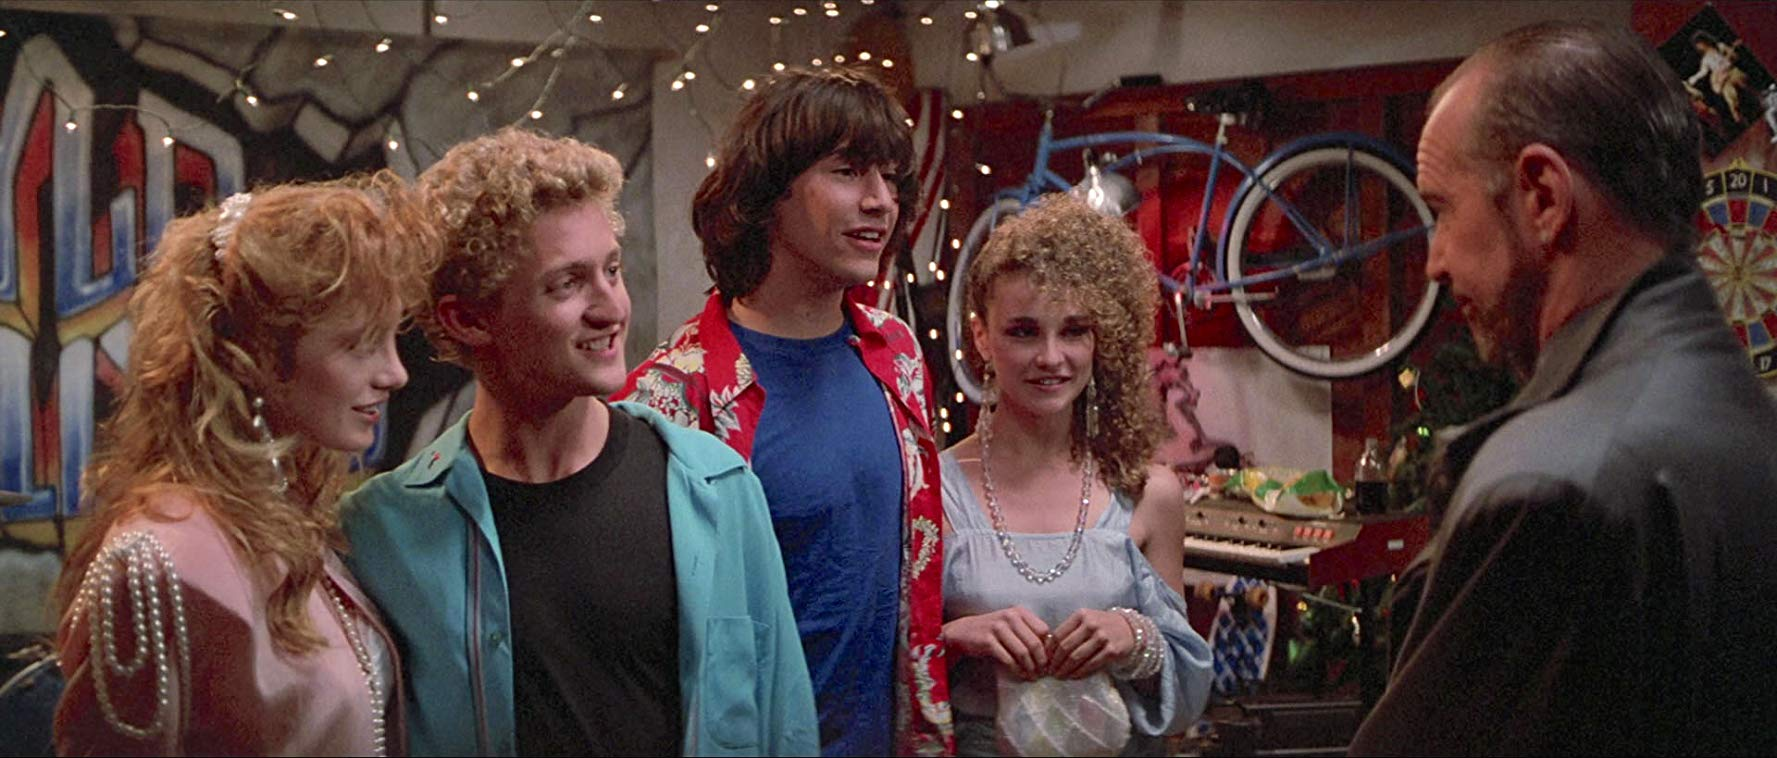 1989 Flashback: Bill and Ted's Excellent Adventure